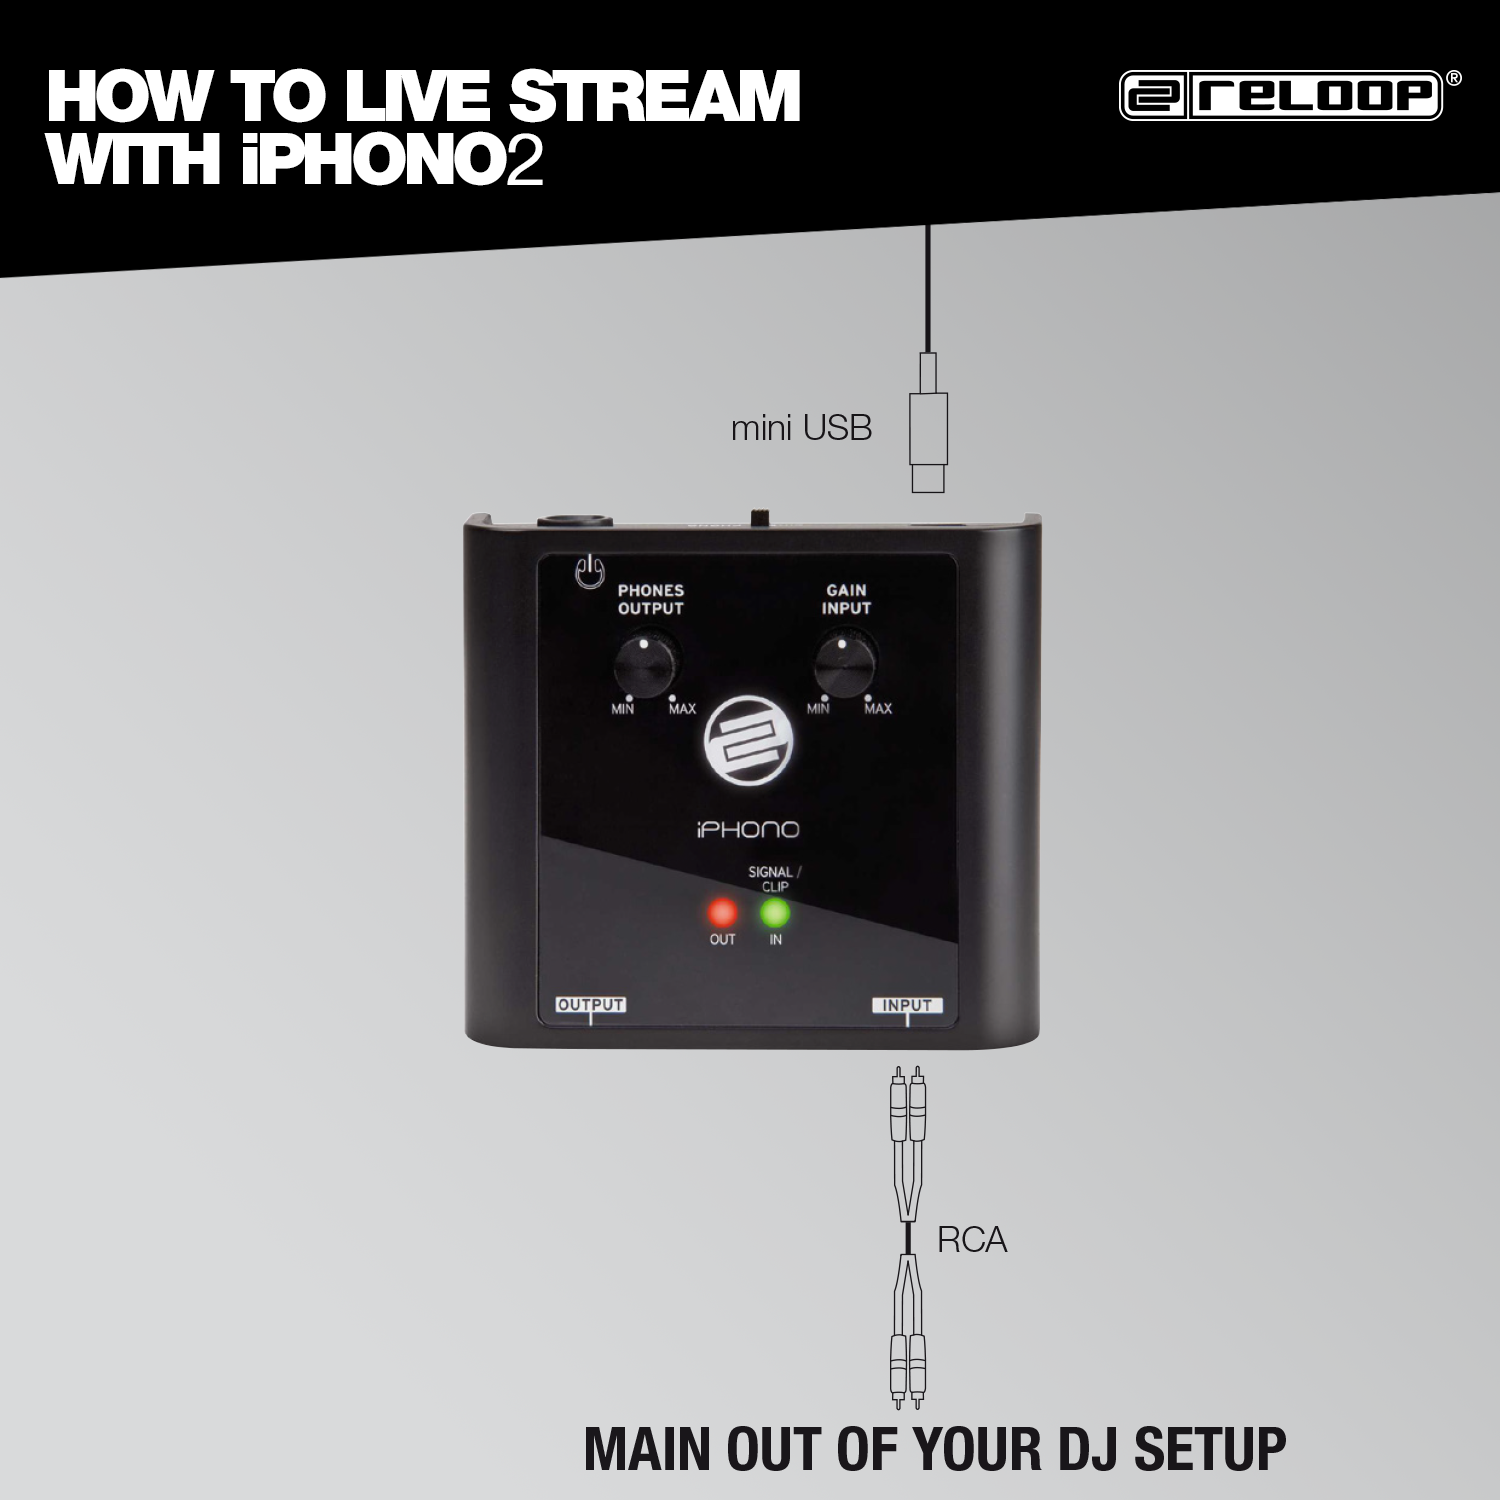 Learn how to live stream with iPhono 2